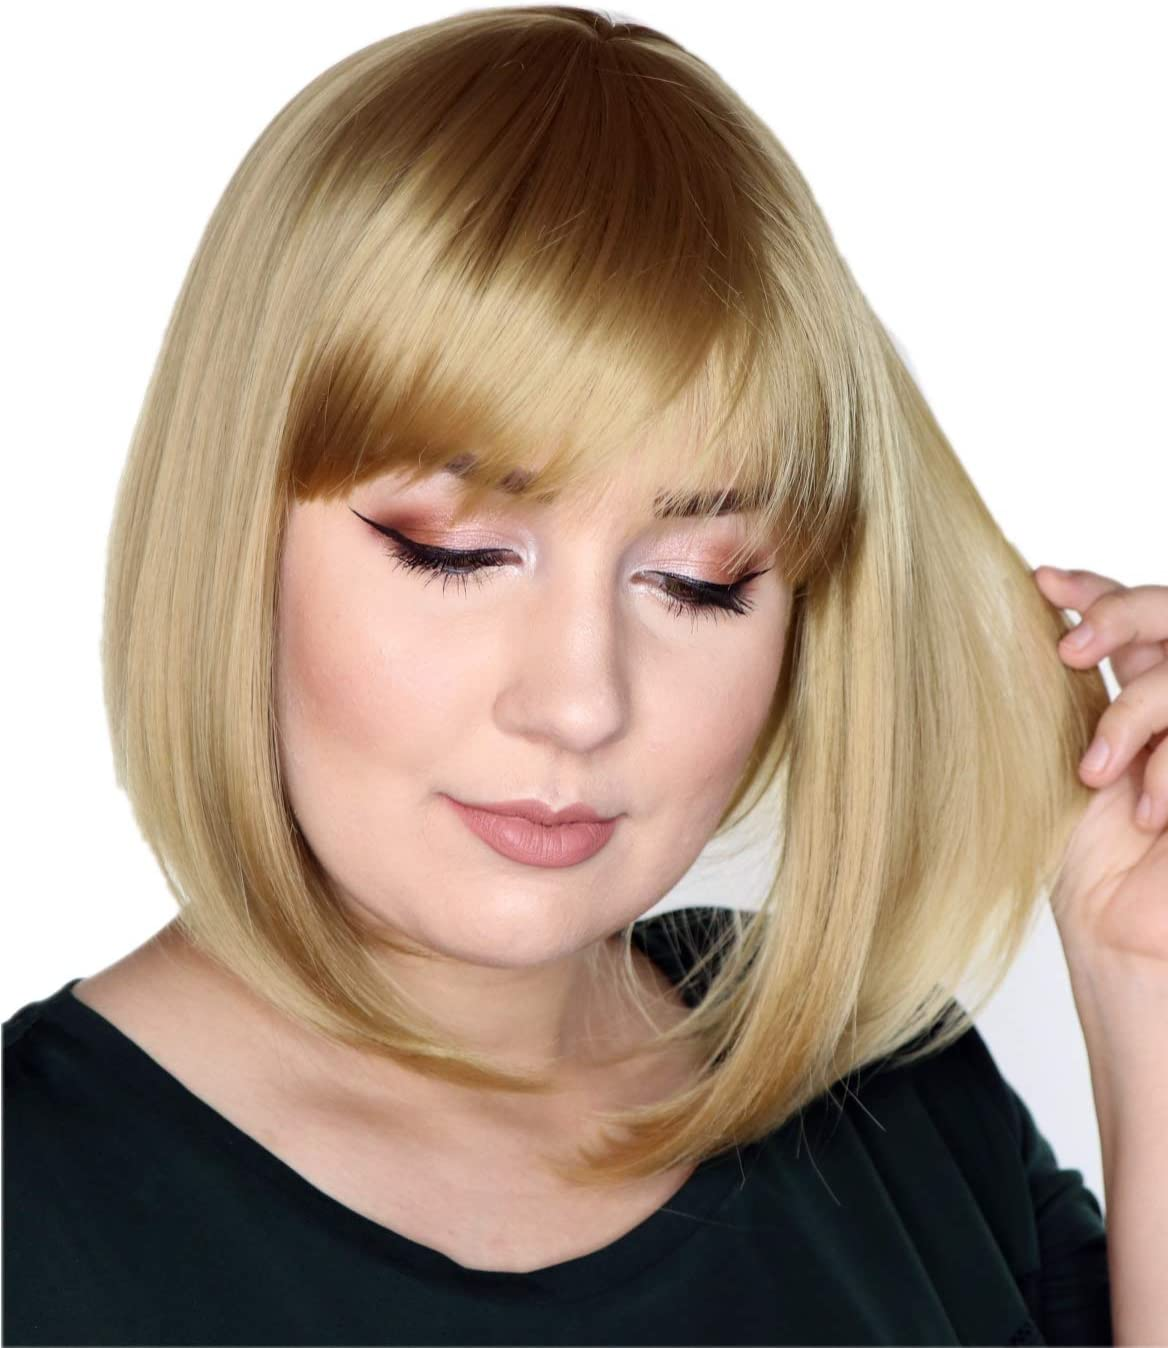 Prettyland Ash Blonde Mid Length Bob Cut Short Hair Wig Straight Bangs Natural Matt For Daily Use C450 Amazon Co Uk Beauty